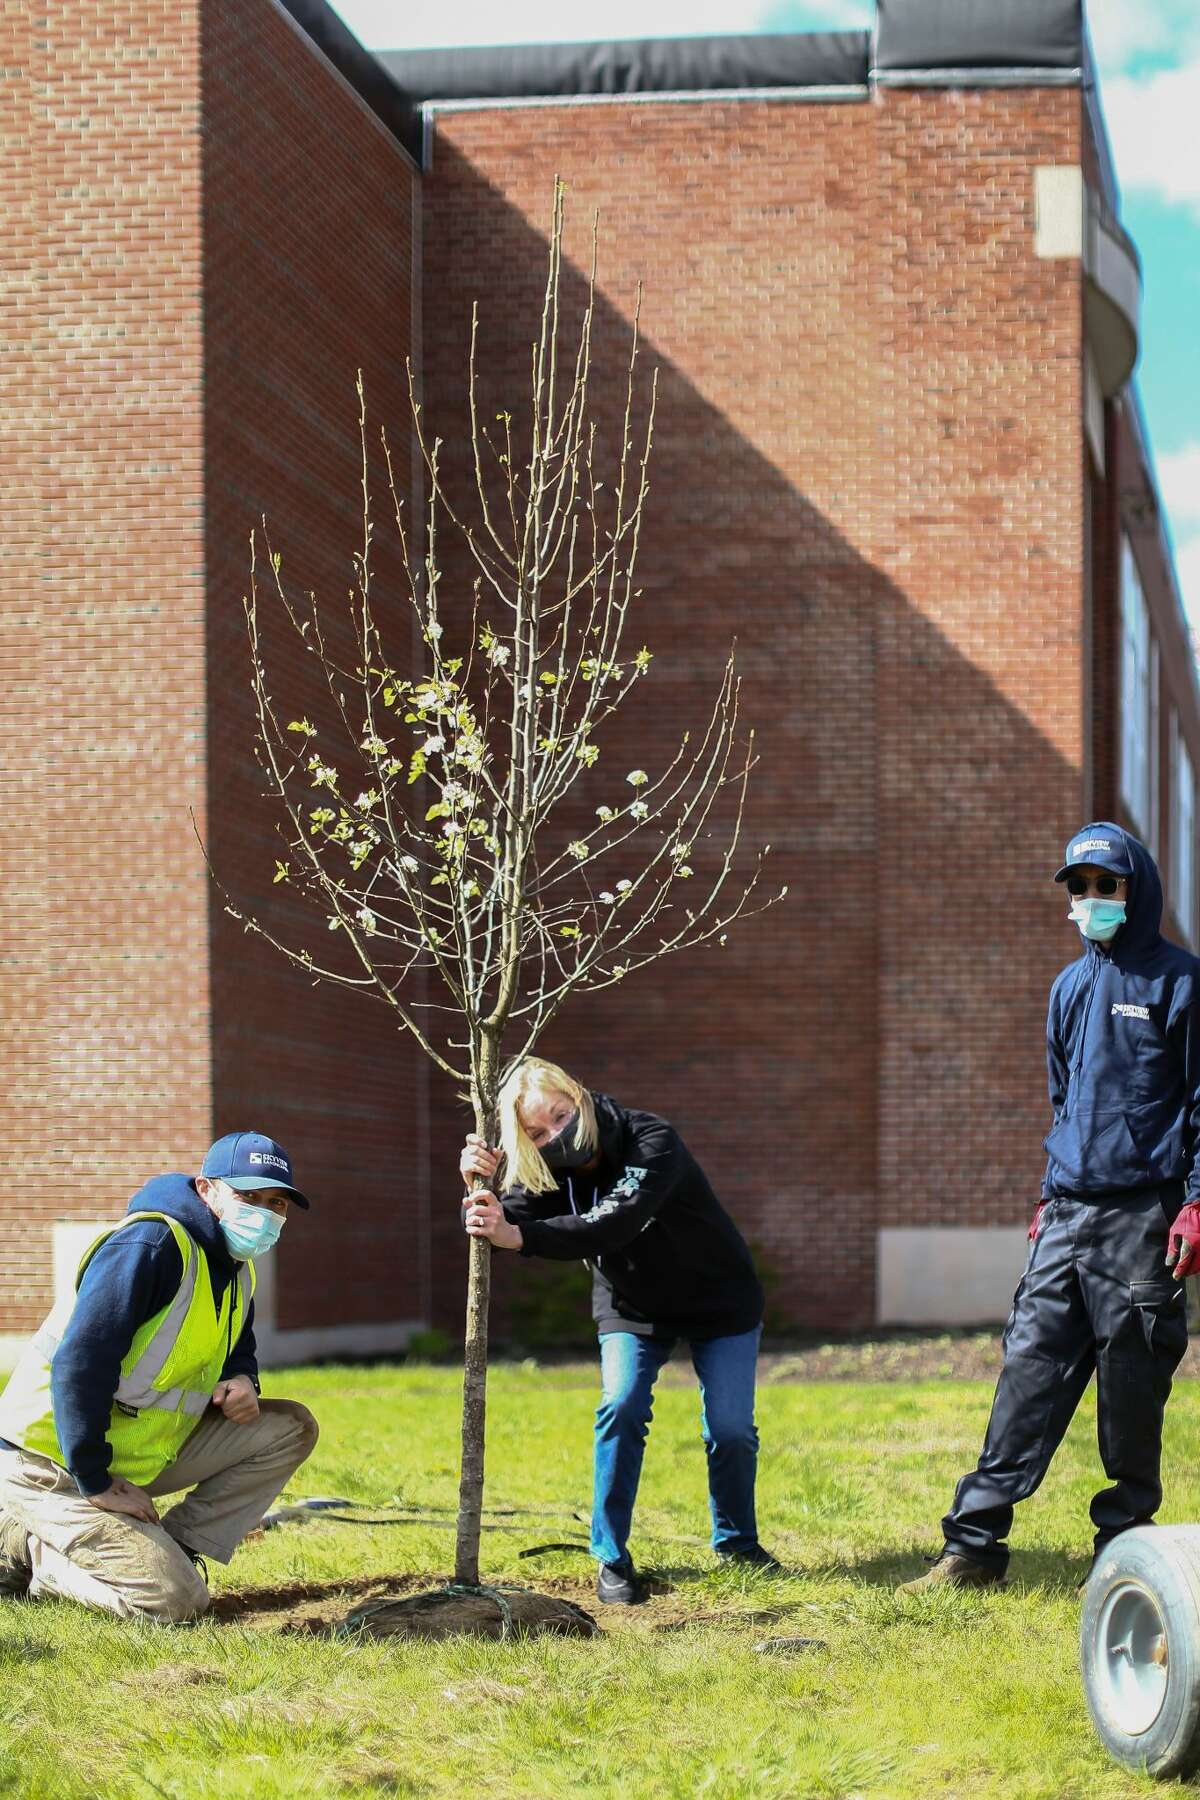 At Genet Elementary School,East Greenbush, Dr. Marianne DiCerbo, of Albany Braces and two helpers from Skyview Landscaping of Waterford plant a tree.